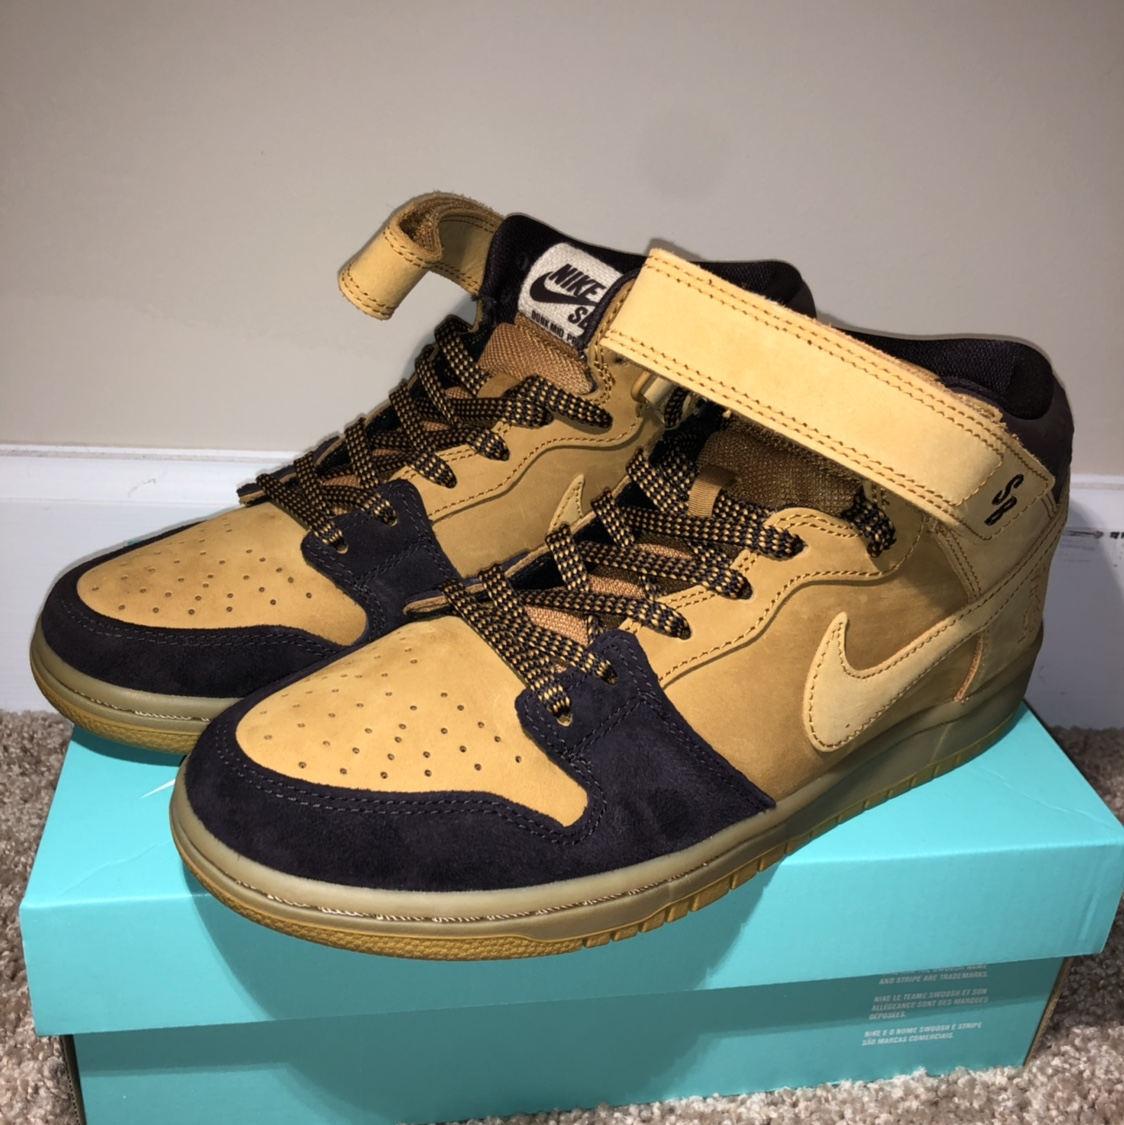 wholesale dealer baa13 b33df Nike SB Lewis Marnell Tribute shoes, brand new never ...